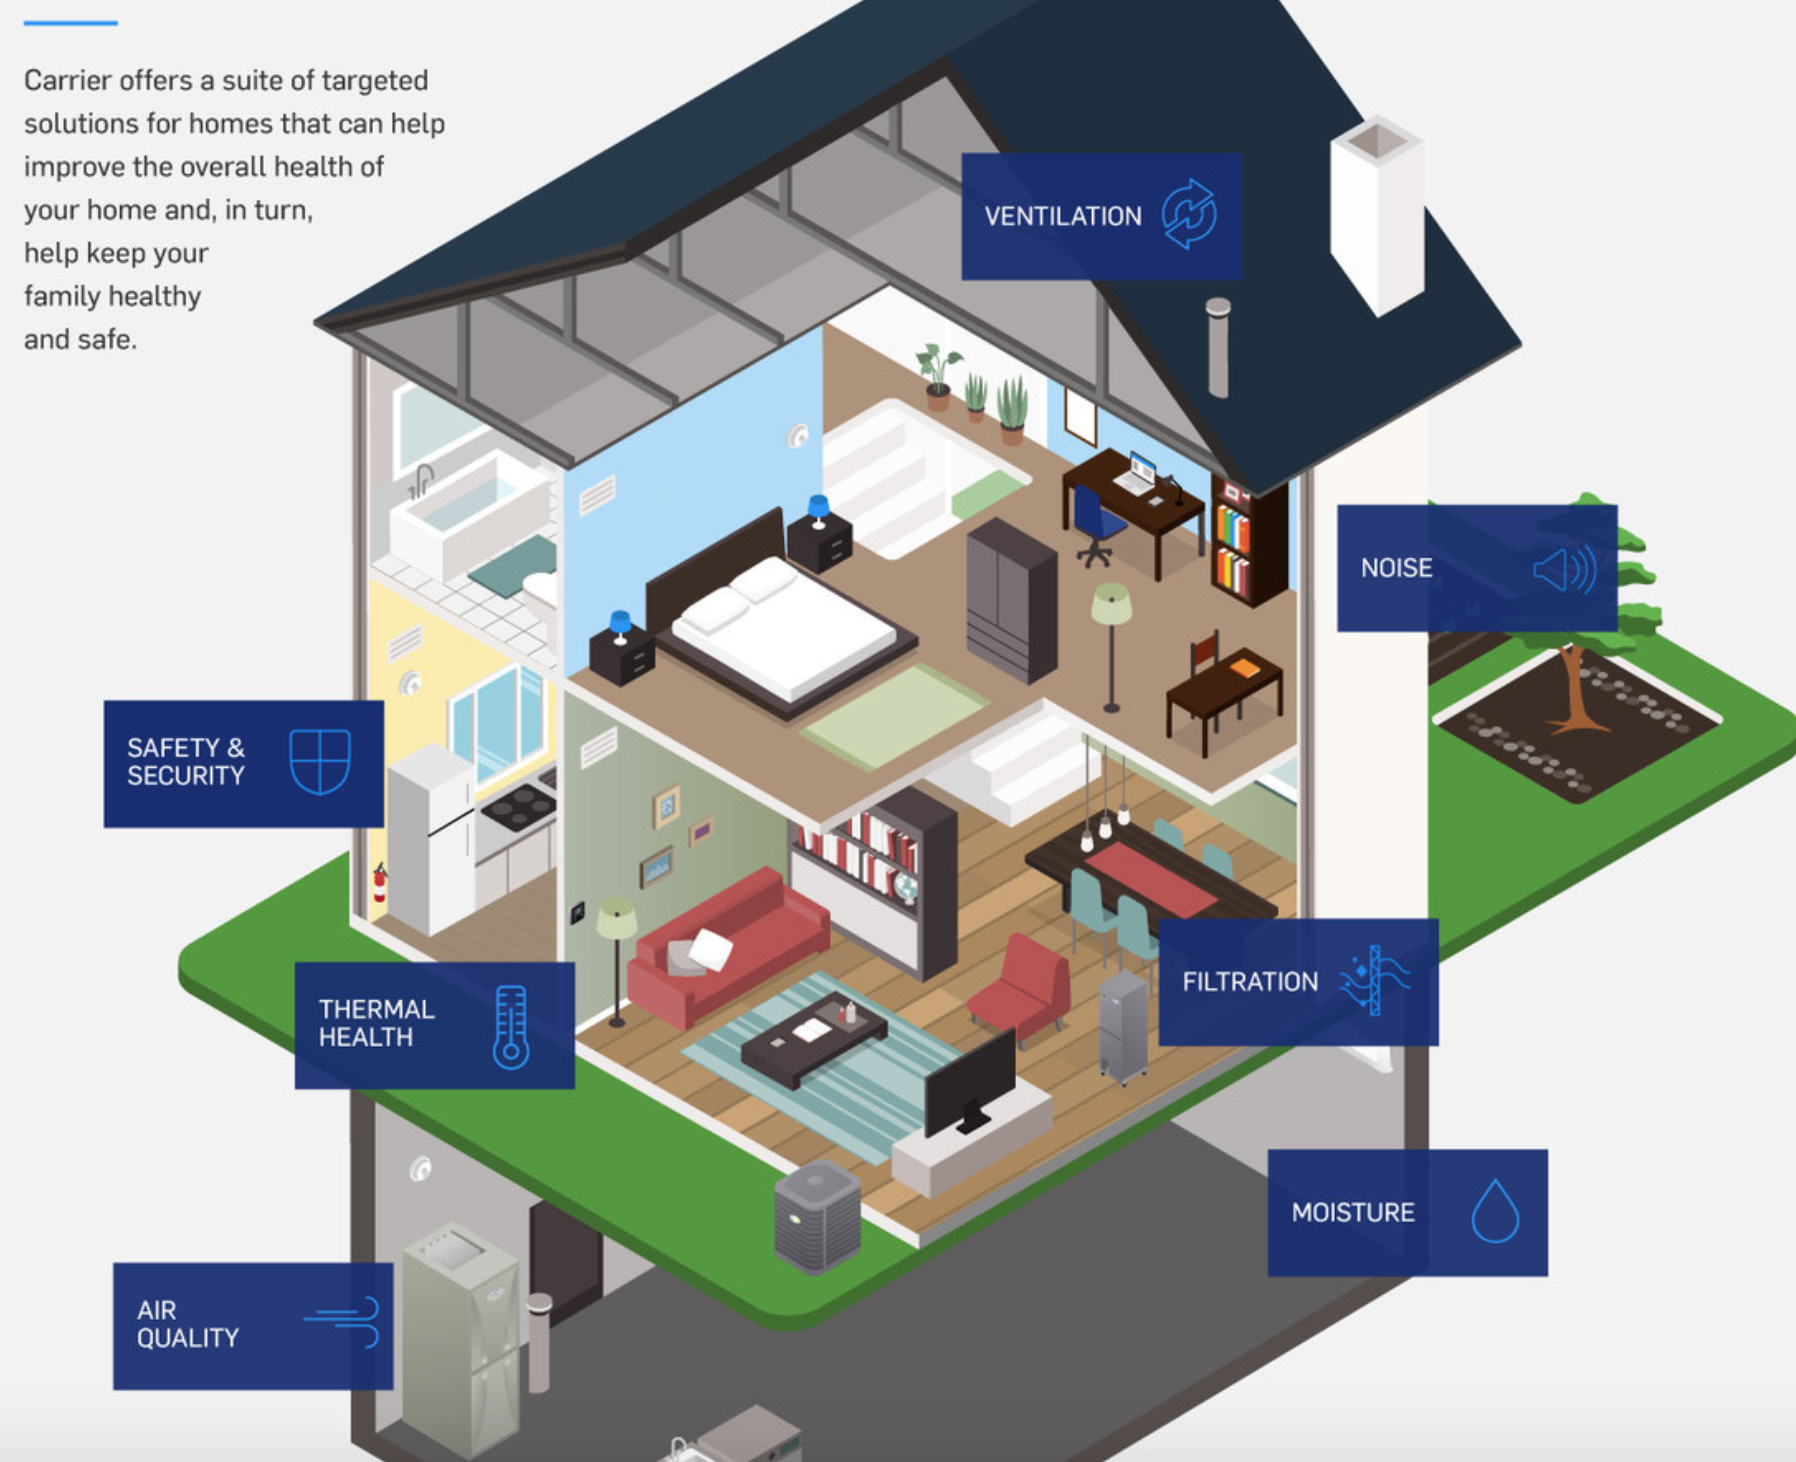 Carrier Launches Healthy Homes To Improve Indoor Air Quality And Safety In Homes Refrigeration World News